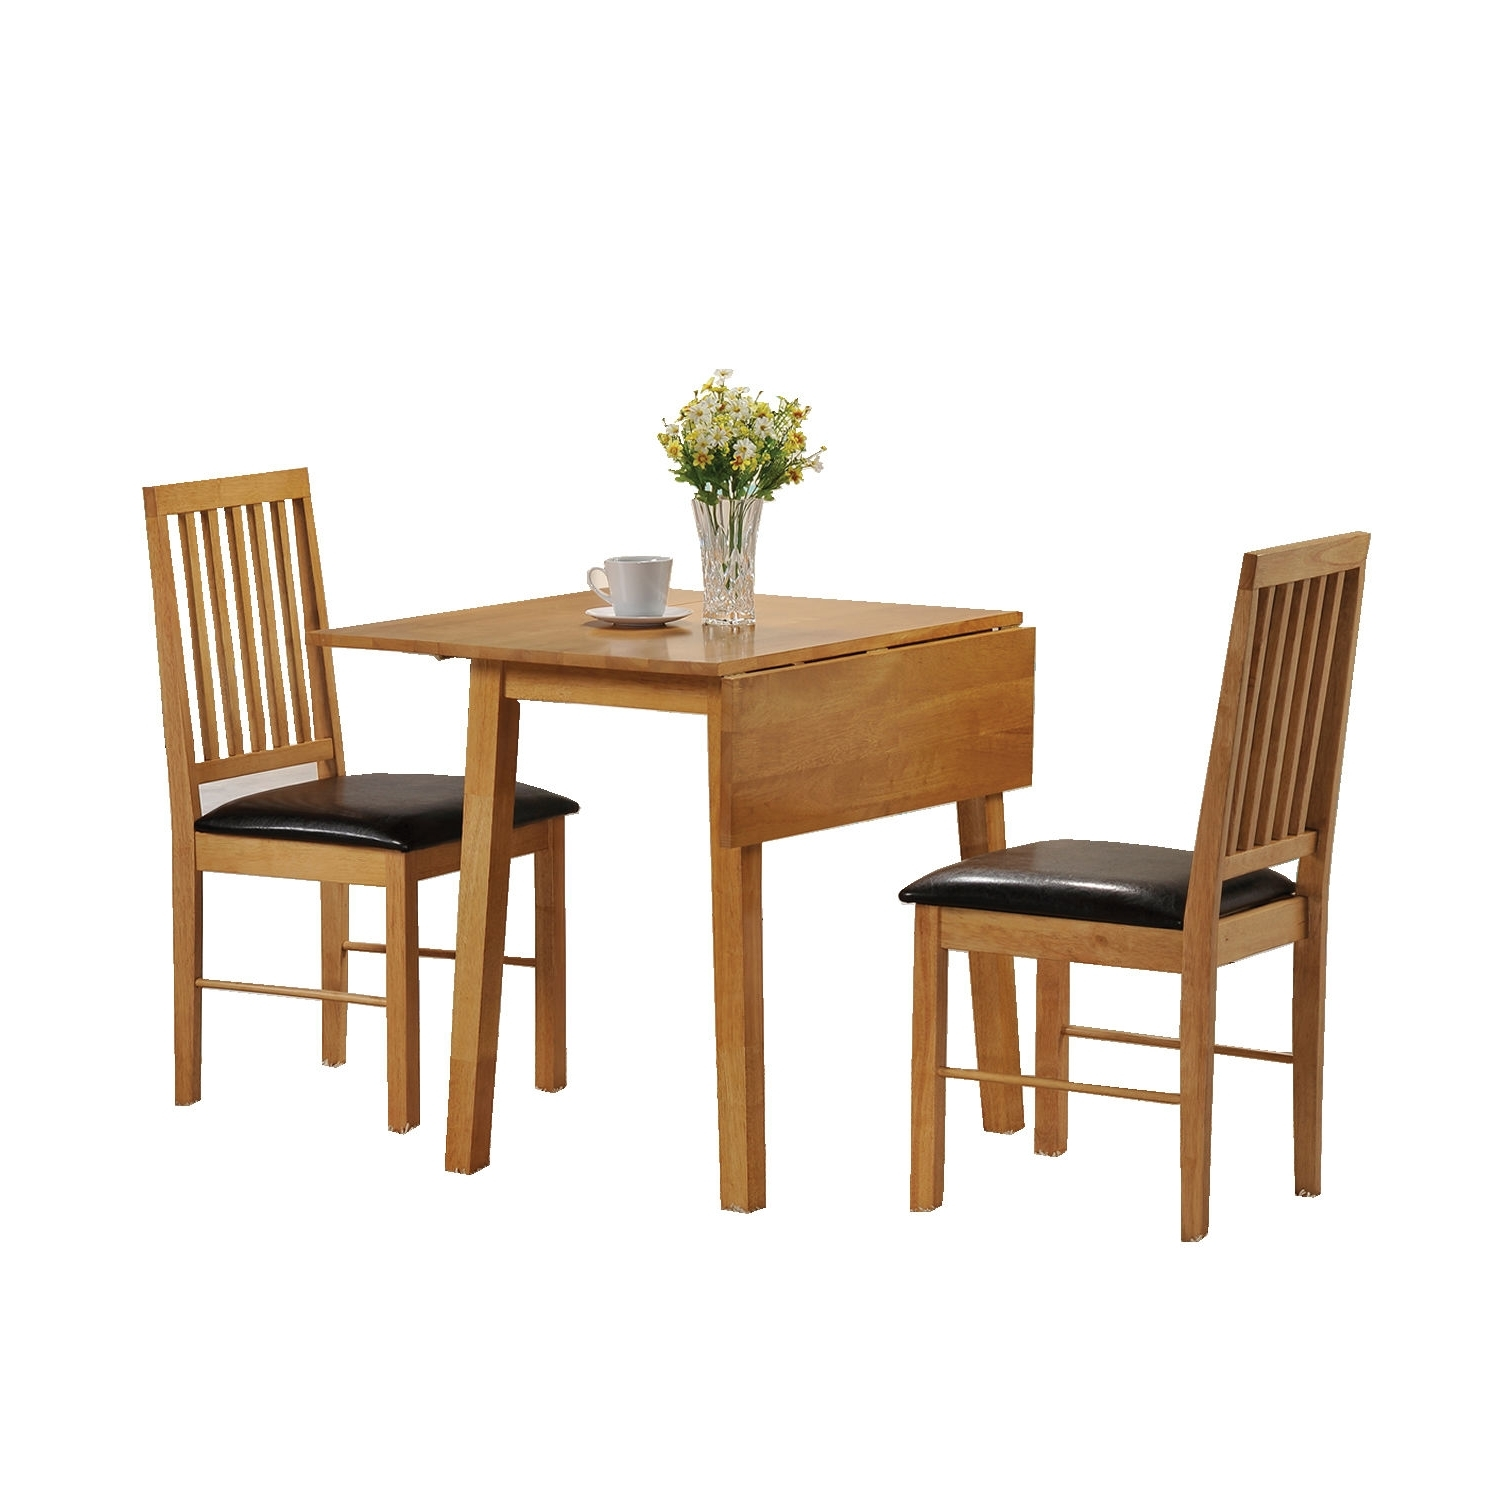 Ebay Within Compact Folding Dining Tables And Chairs (Gallery 19 of 25)